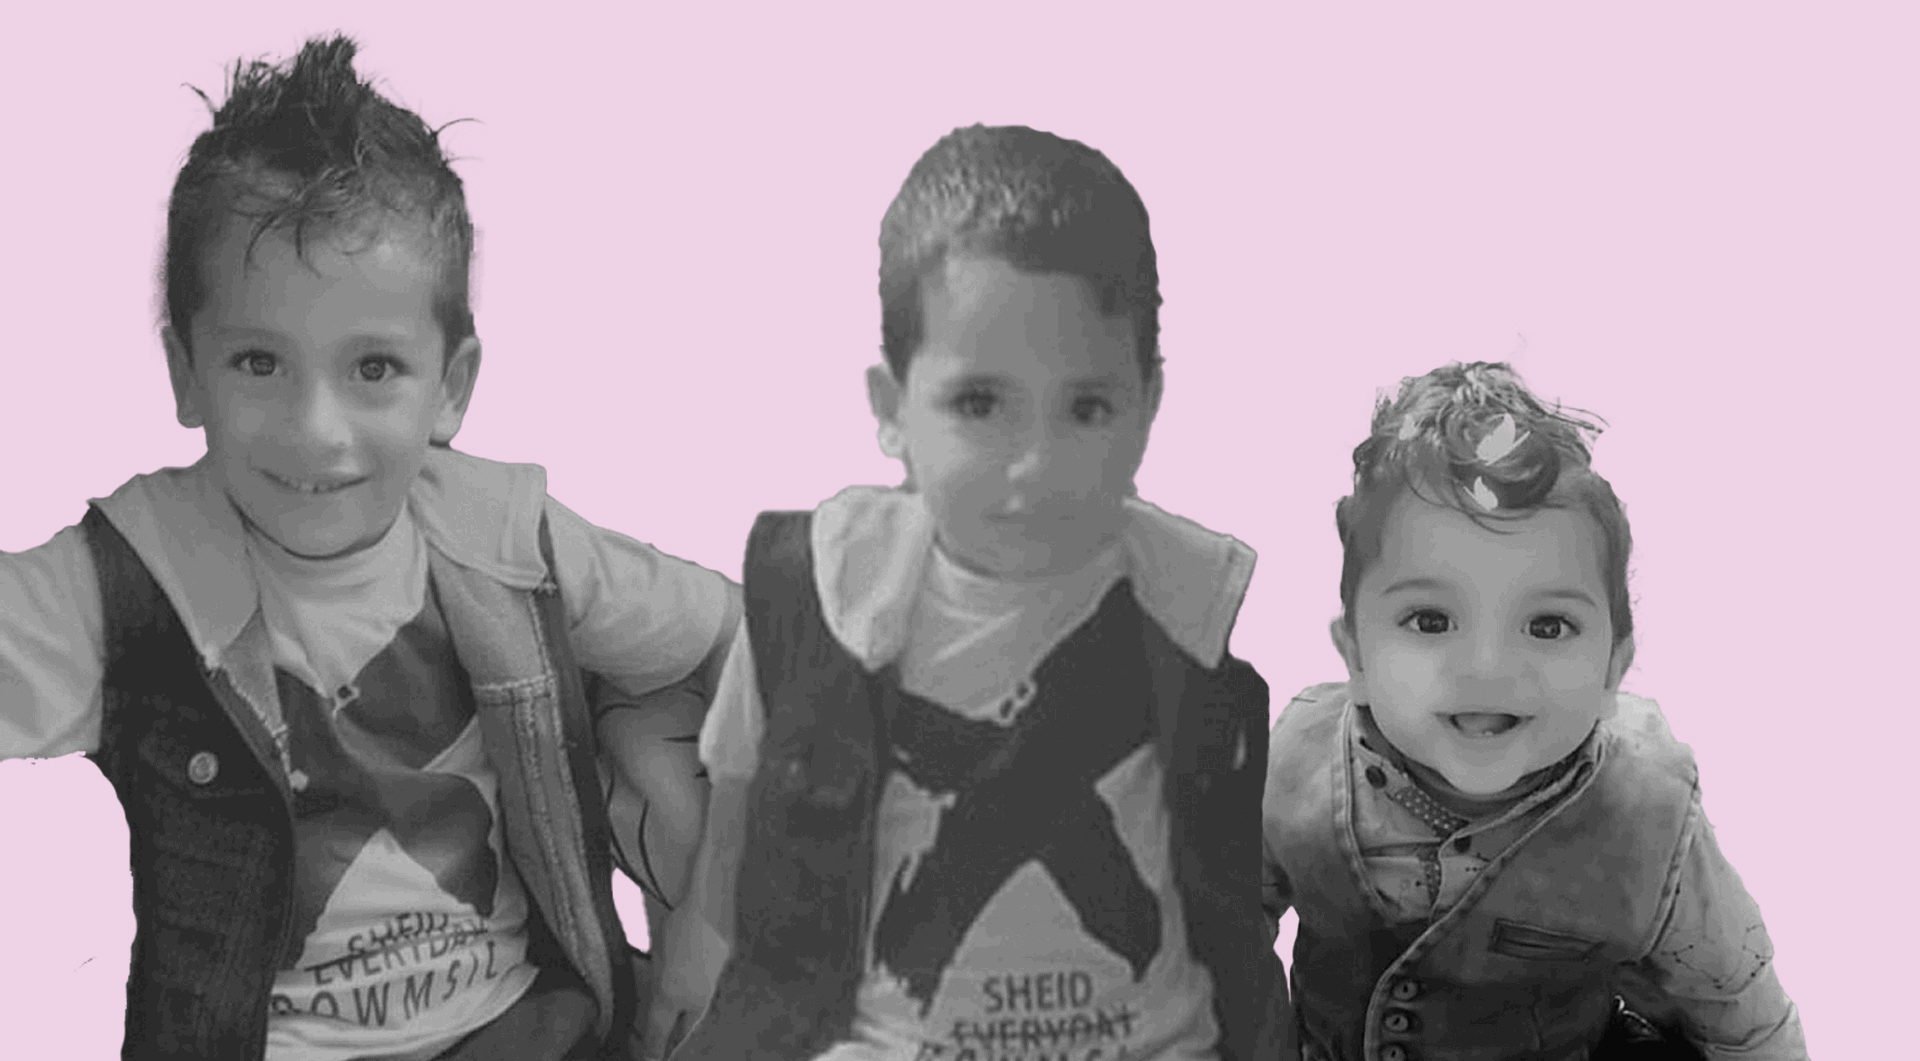 Yousef al-Hazin, 5, (left) and his brothers, four-year-old Mahmoud (center) and two-year-old Mohammad died on September 1, 2020 when their home caught on fire in the Gaza Strip. (Photos courtesy of the al-Hazin family)